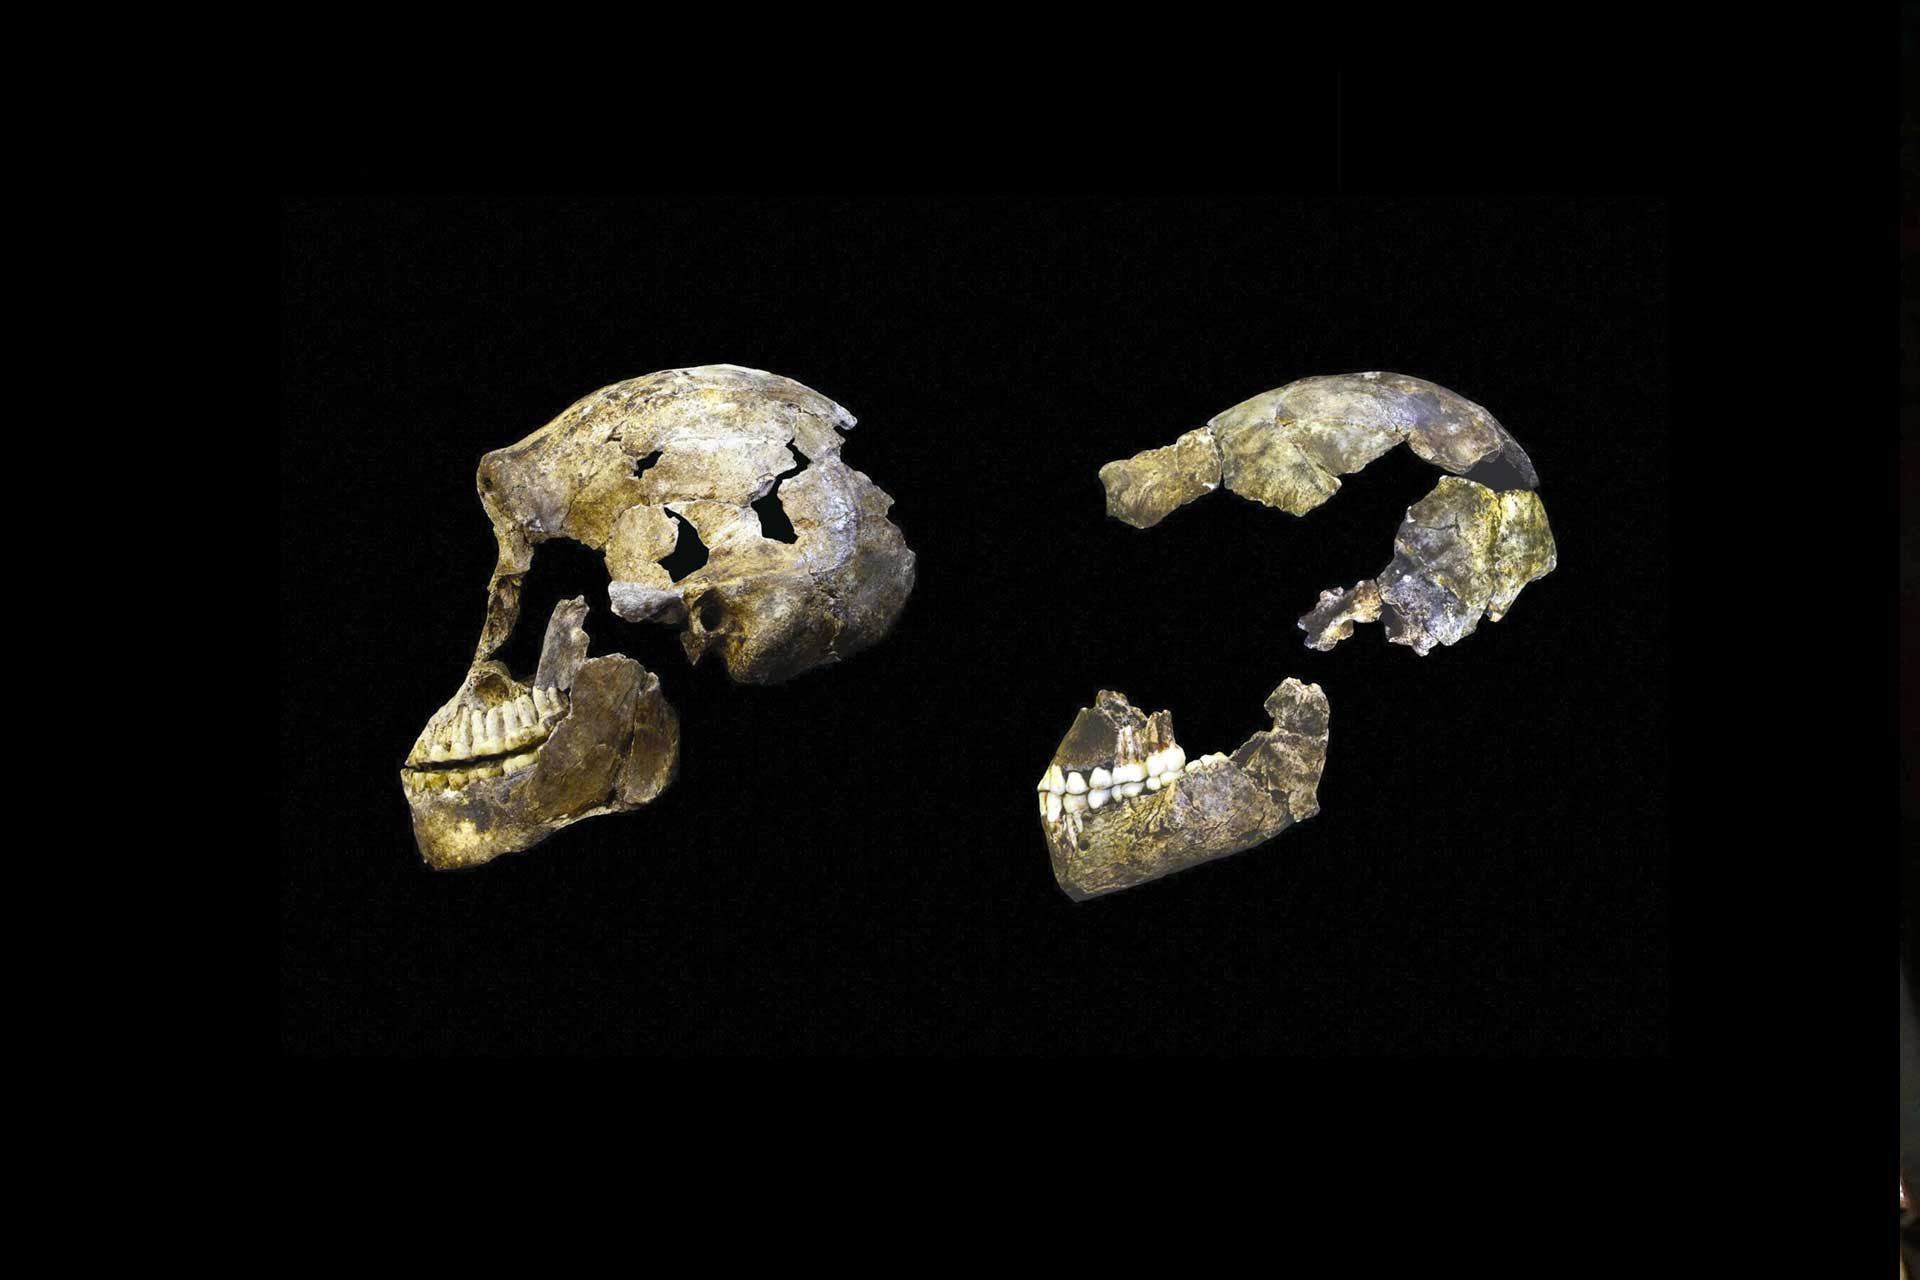 Two skulls - 'neo' and homo naledi